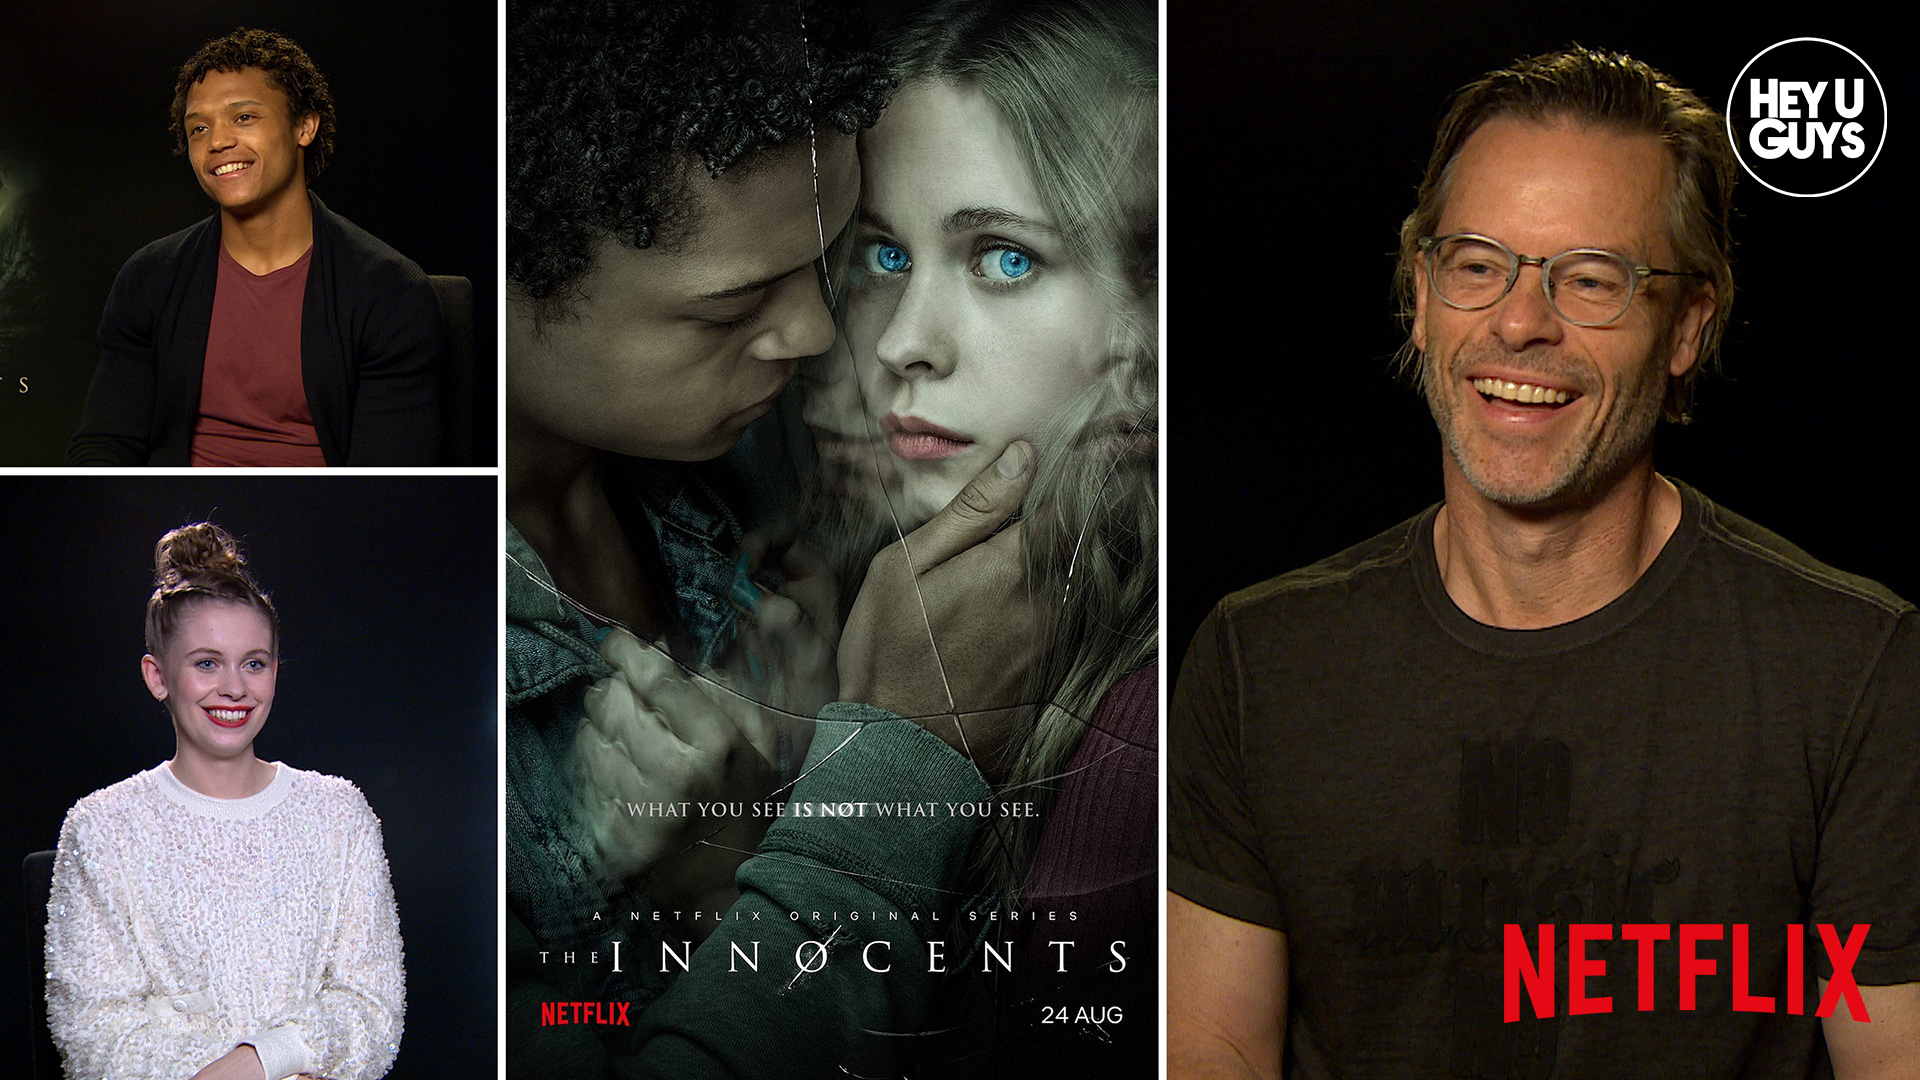 The Innocents Cast Interviews